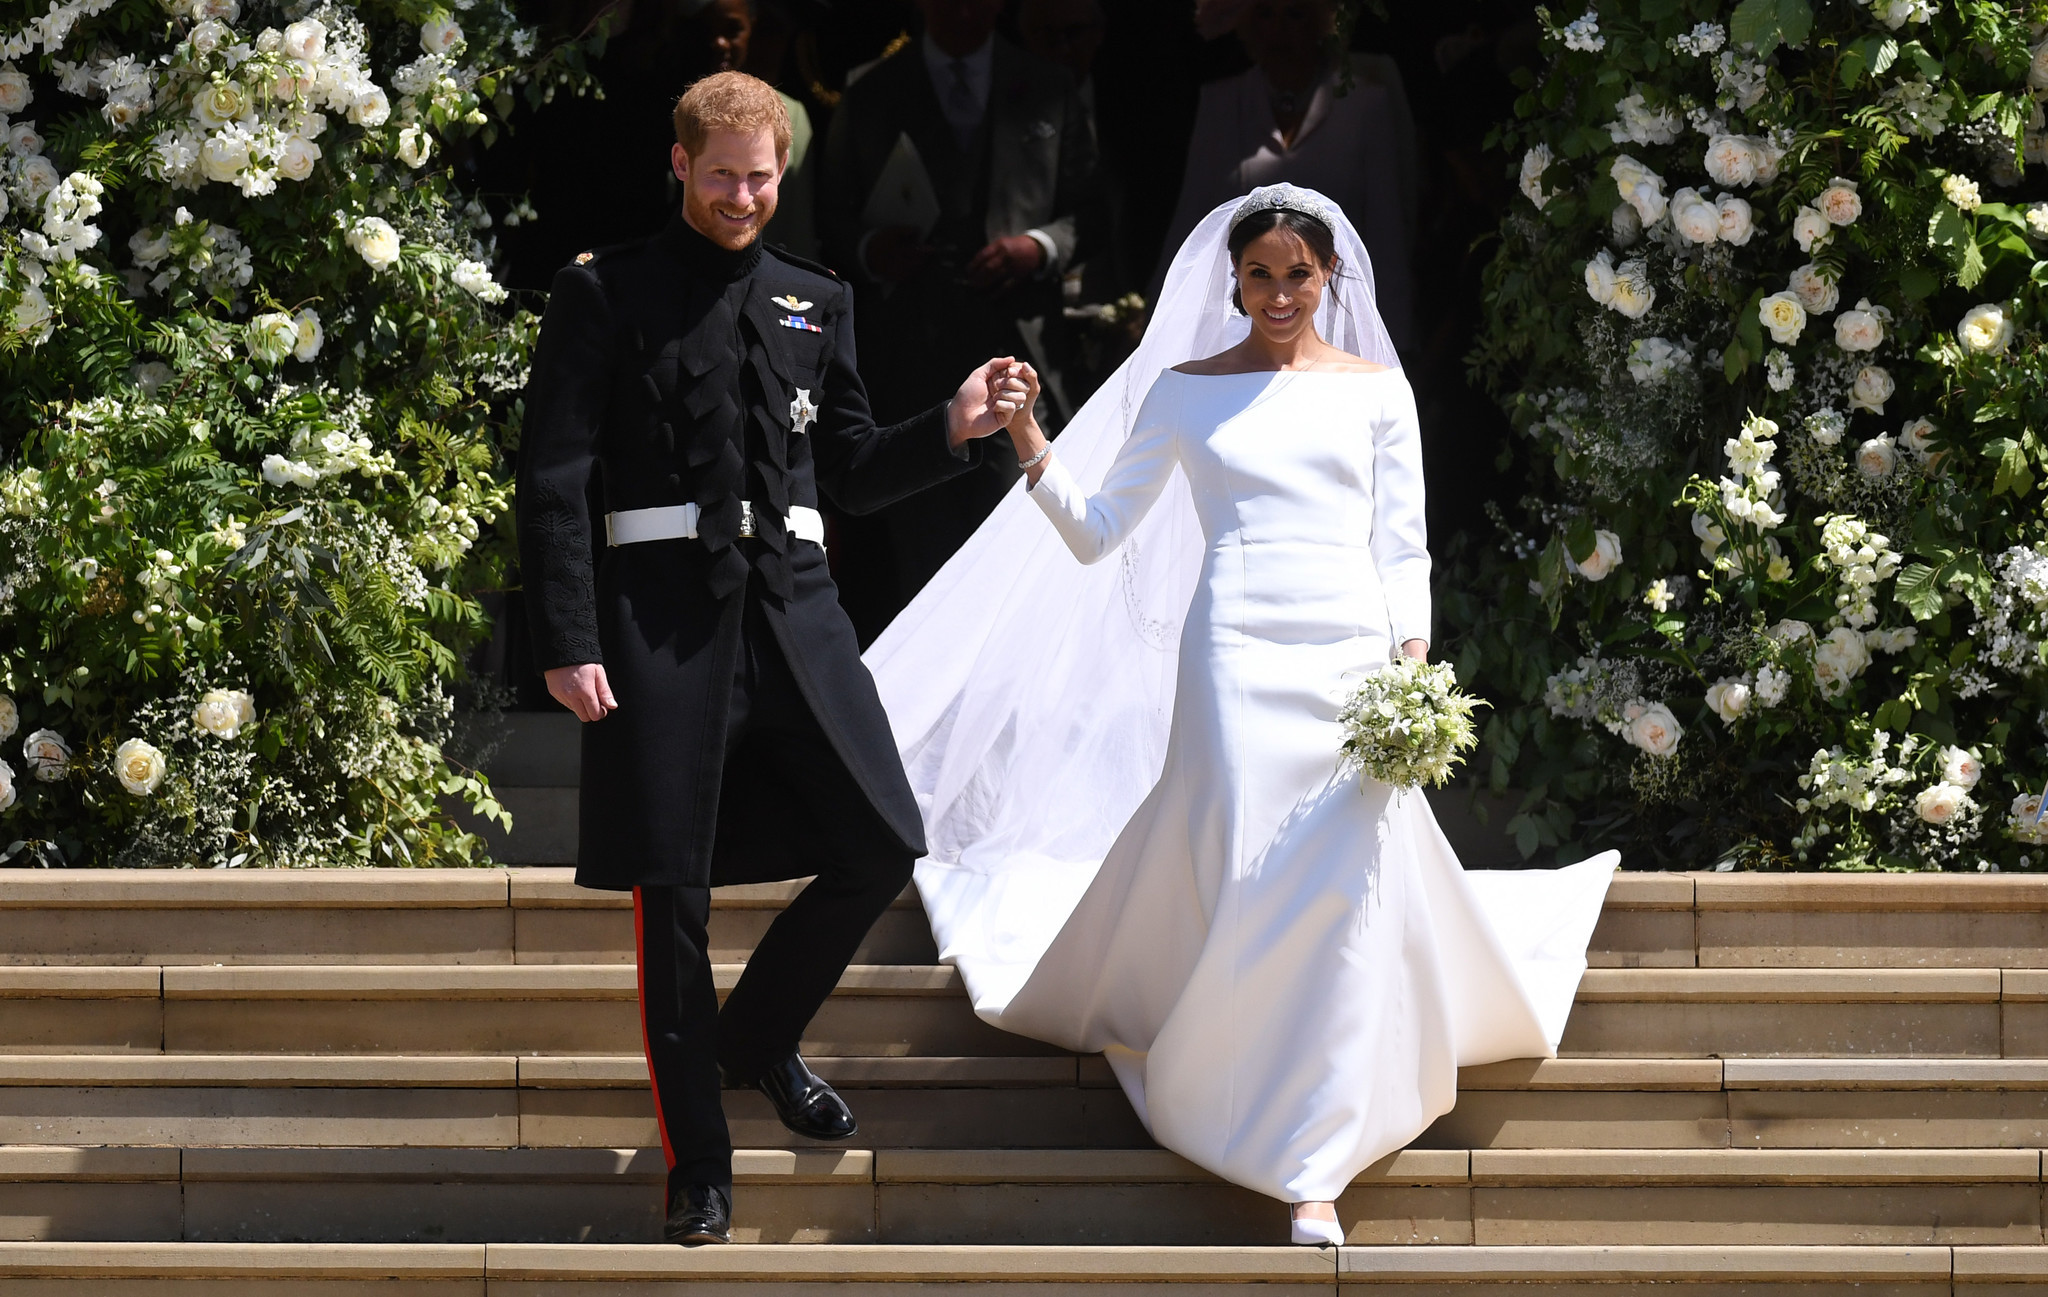 Royal Wedding of Prince Harry and Meghan Markle in Windsor, United Kingdom - 19 May 2018